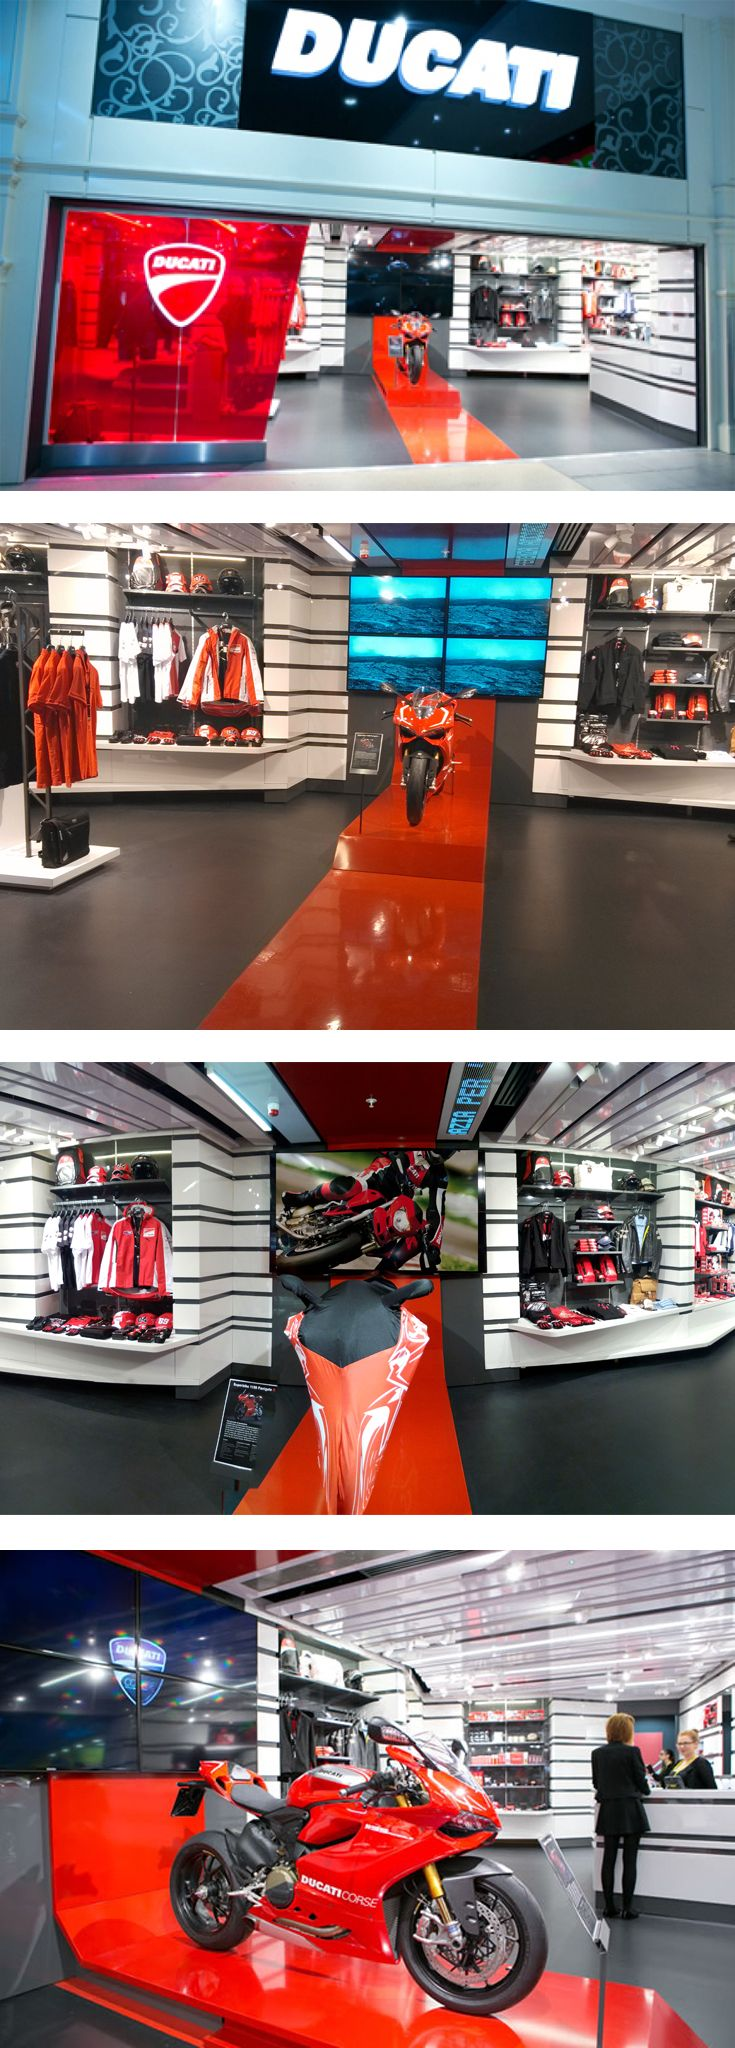 Ducati new store concept - designed by GH+A